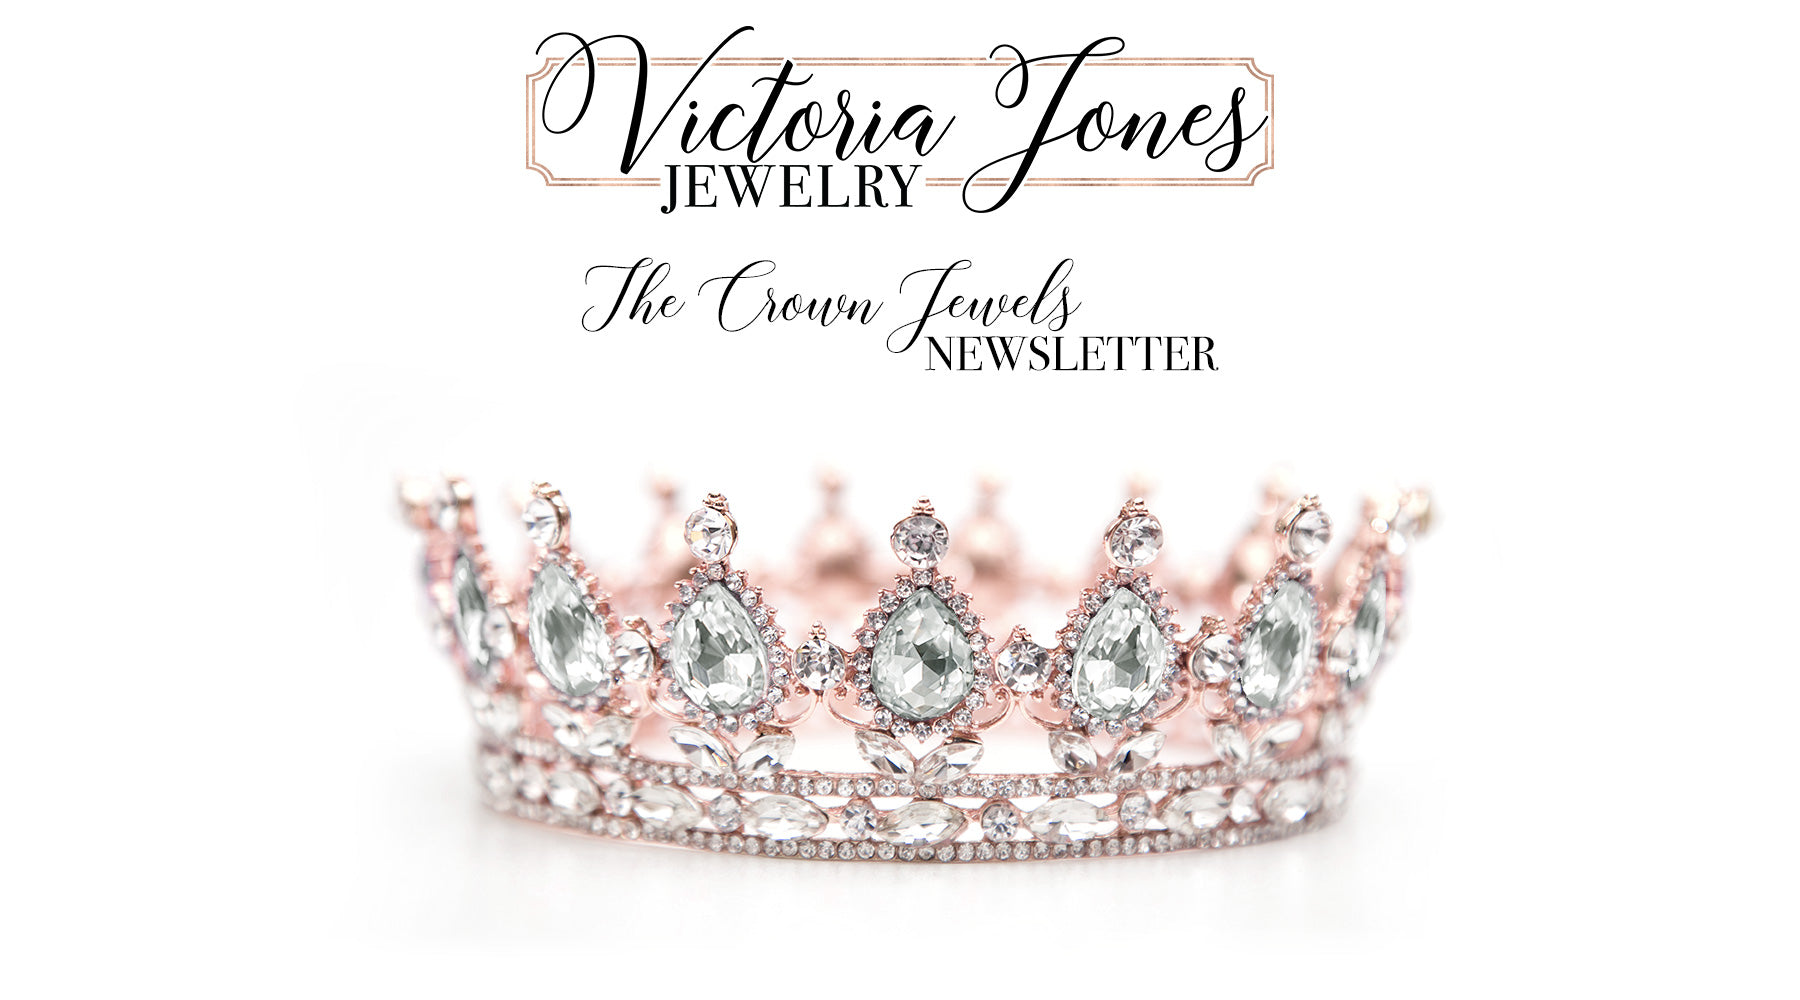 The Crown Jewels Newsletter